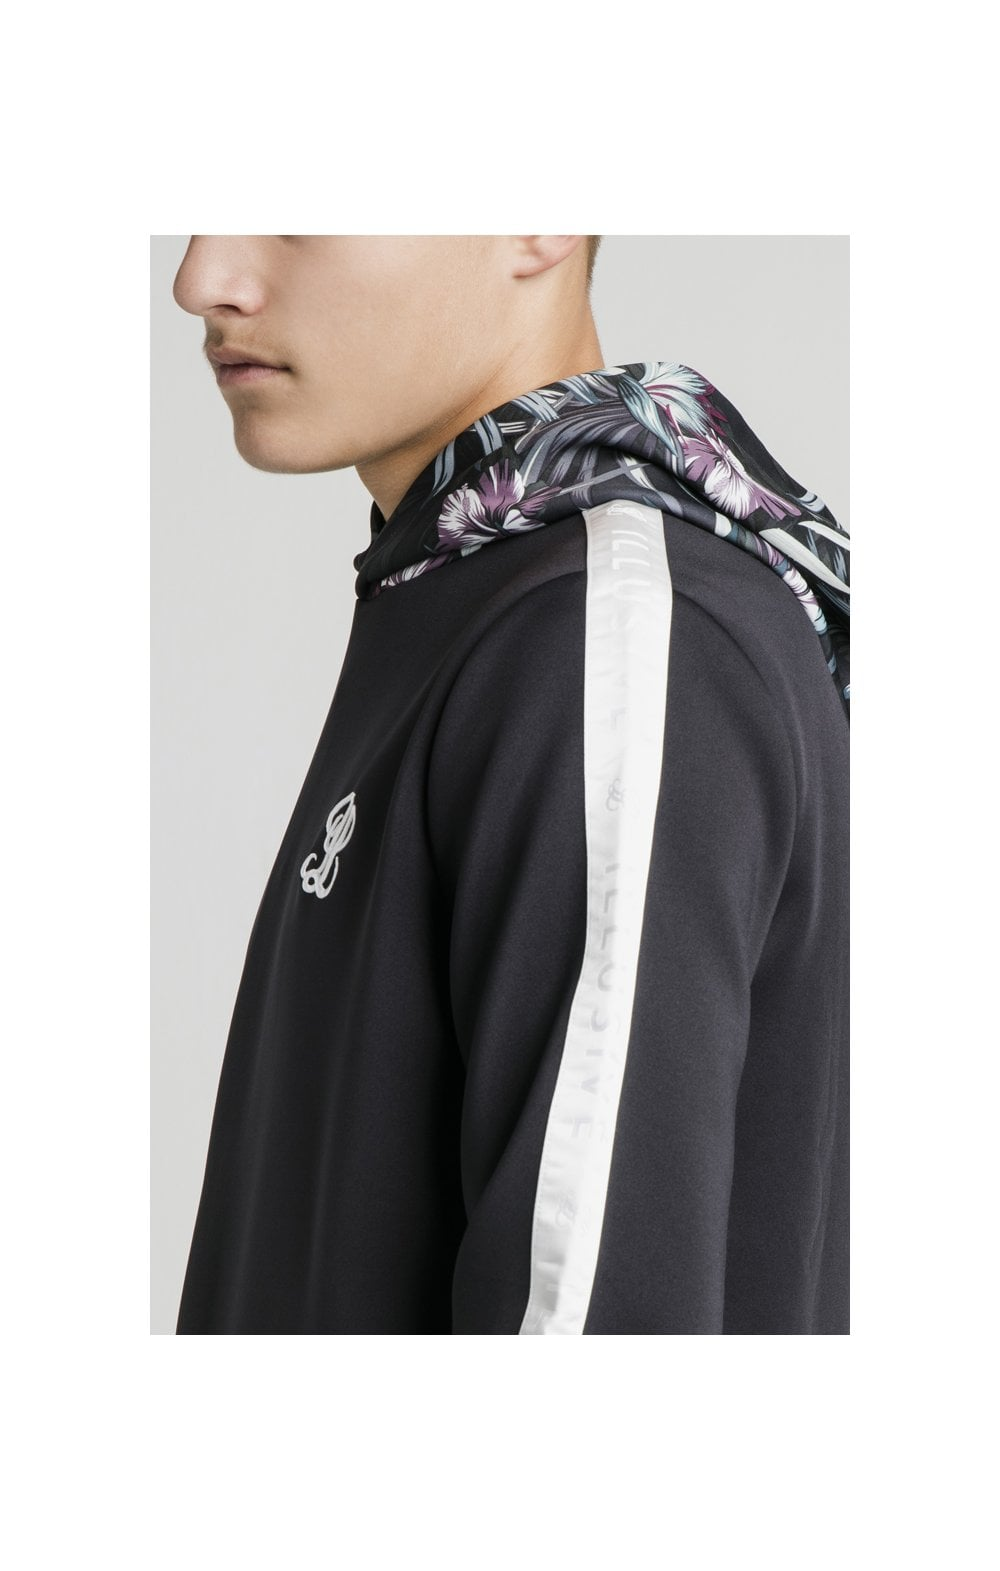 Load image into Gallery viewer, Illusive London Dark Tropical Taped Hoodie - Navy (1)